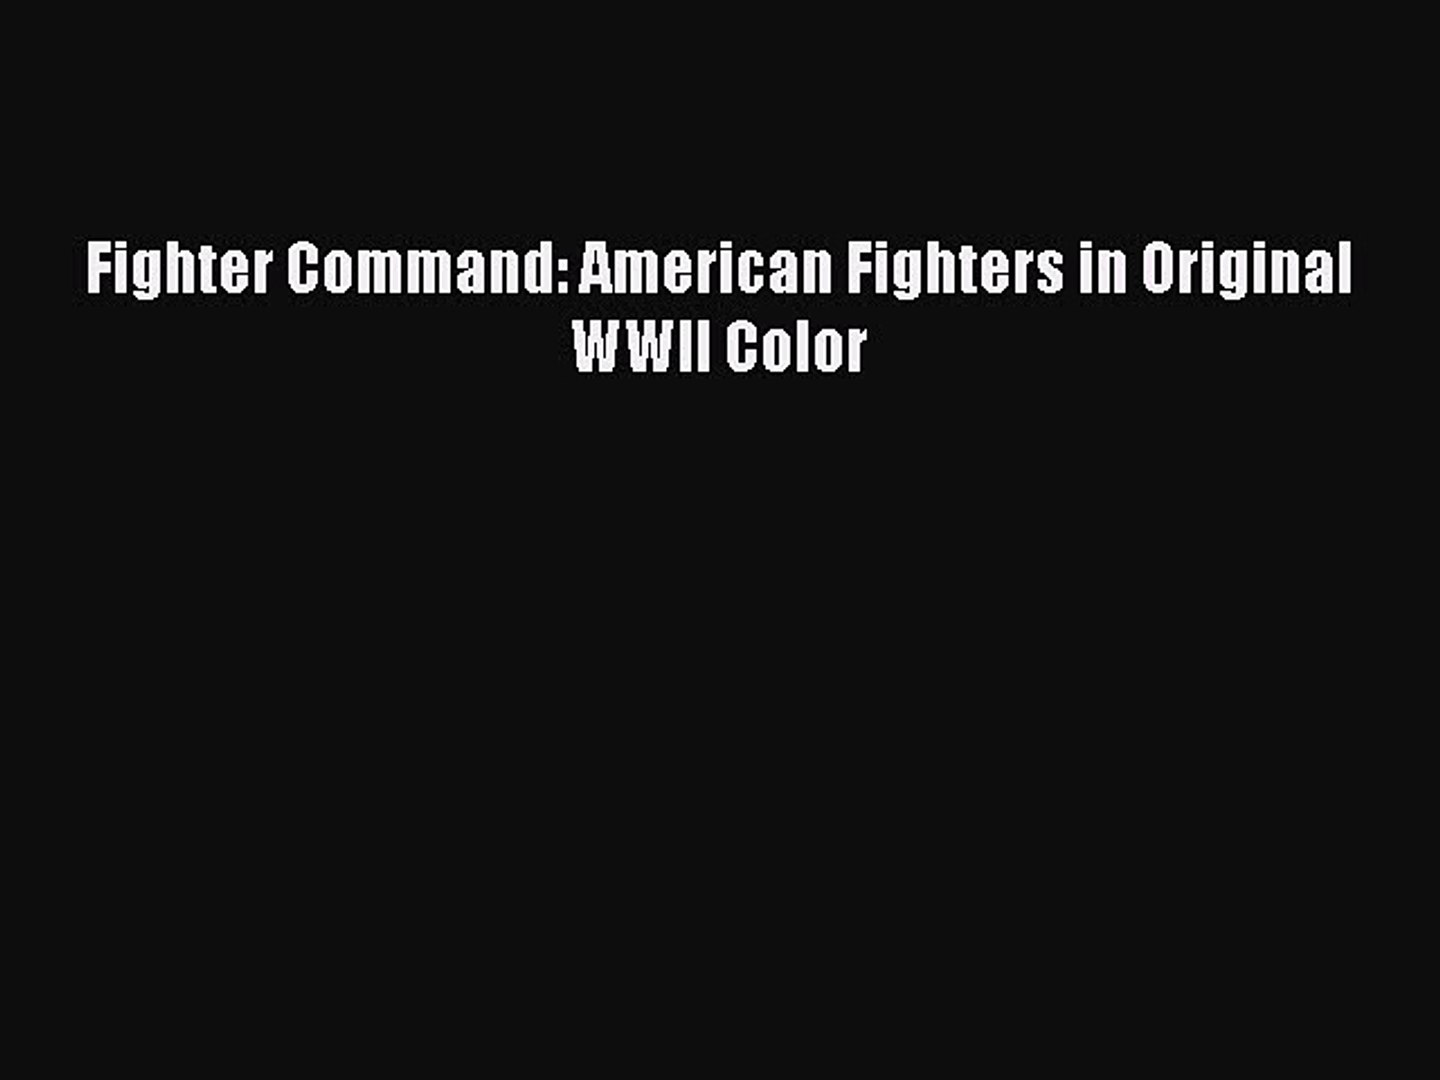 [Read Book] Fighter Command: American Fighters in Original WWII Color  EBook